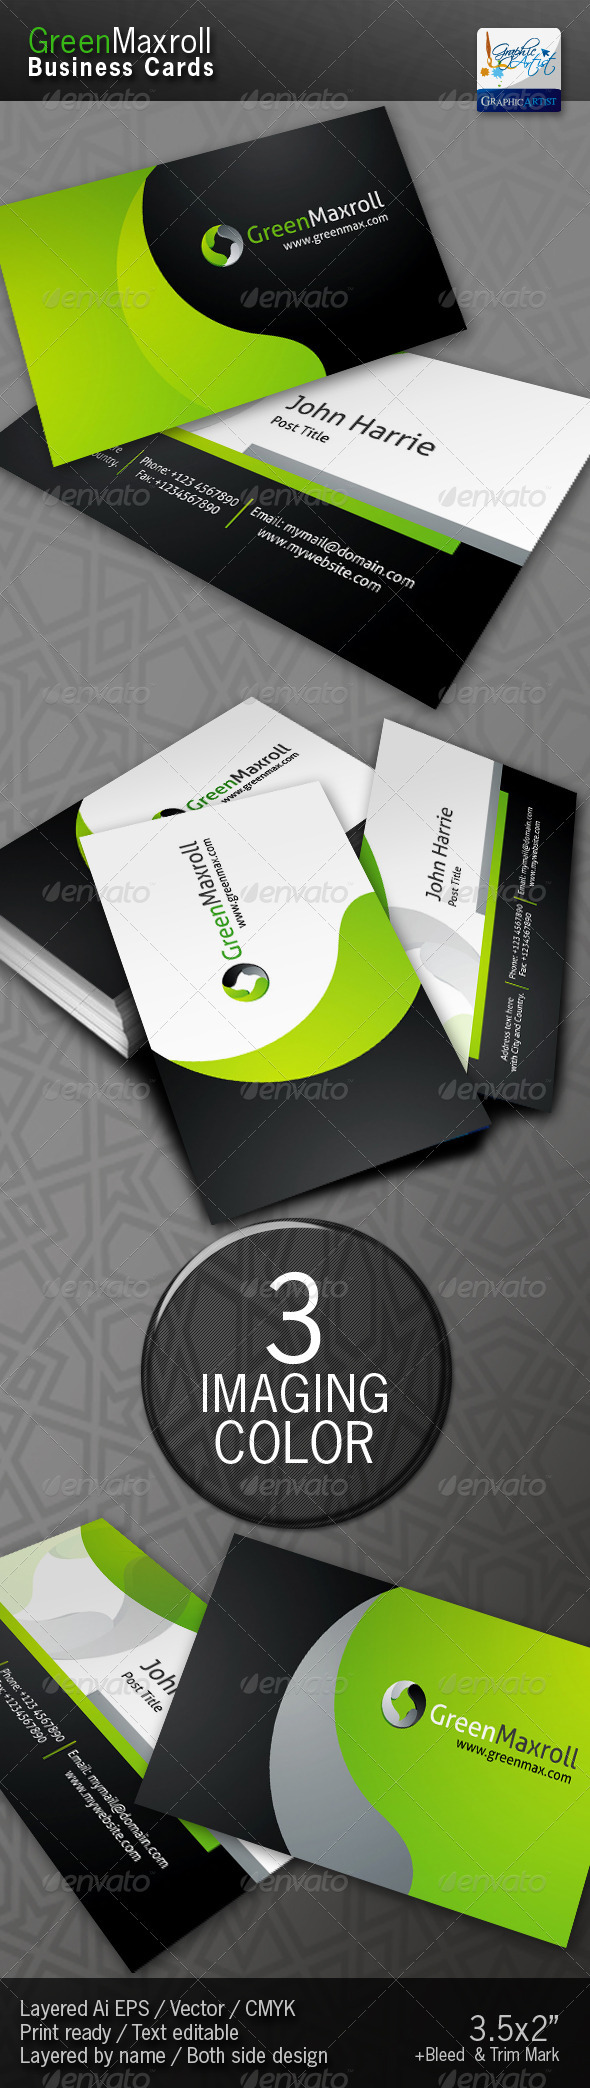 Graphic River GreenMaxroll Business Cards Print Templates -  Business Cards  Corporate 1455817